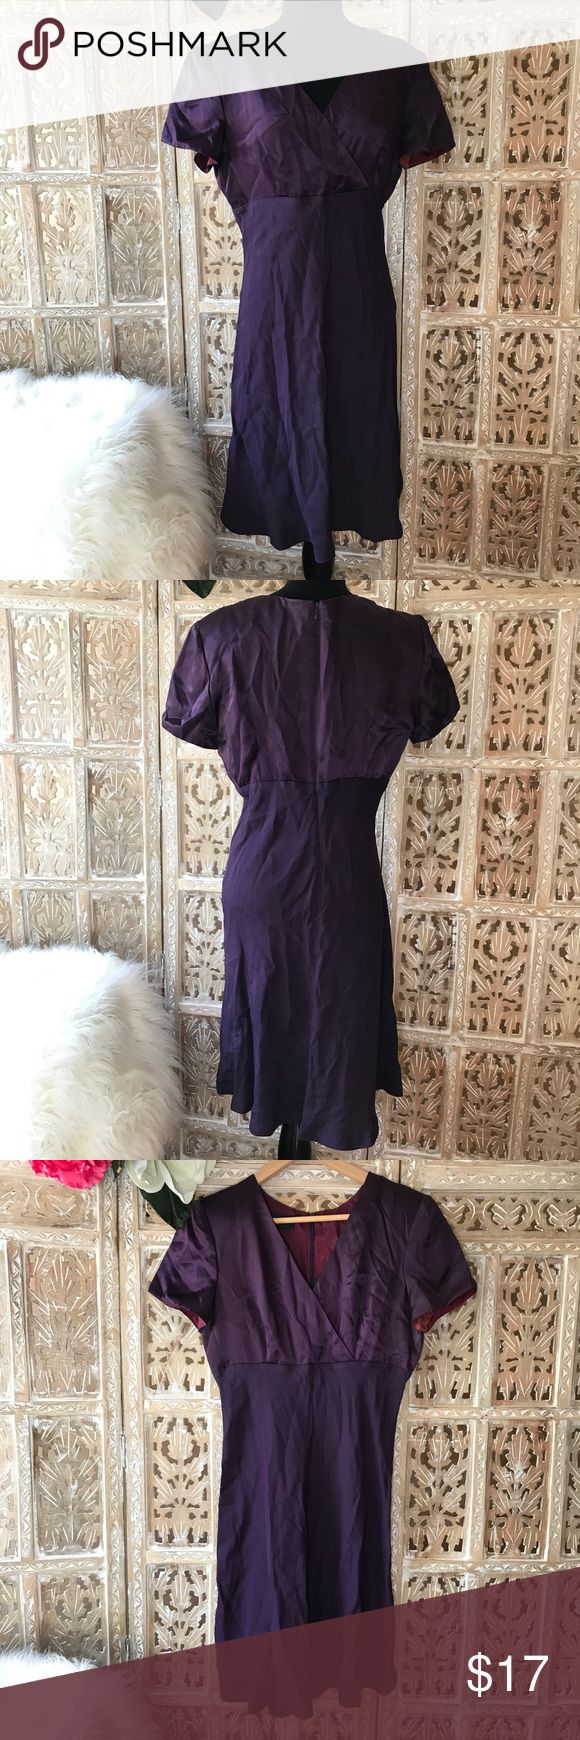 """[Donna Ricco] New York cocktail dress size 8 [Donna Ricco] New York cocktail dress size 8. Across chest about 18 1/2"""". Dress length about 39"""". V-neck. Shoulder pads. Zipper at back. Fully lined. Very good condition. It just needs some steaming. Donna Ricco Dresses"""